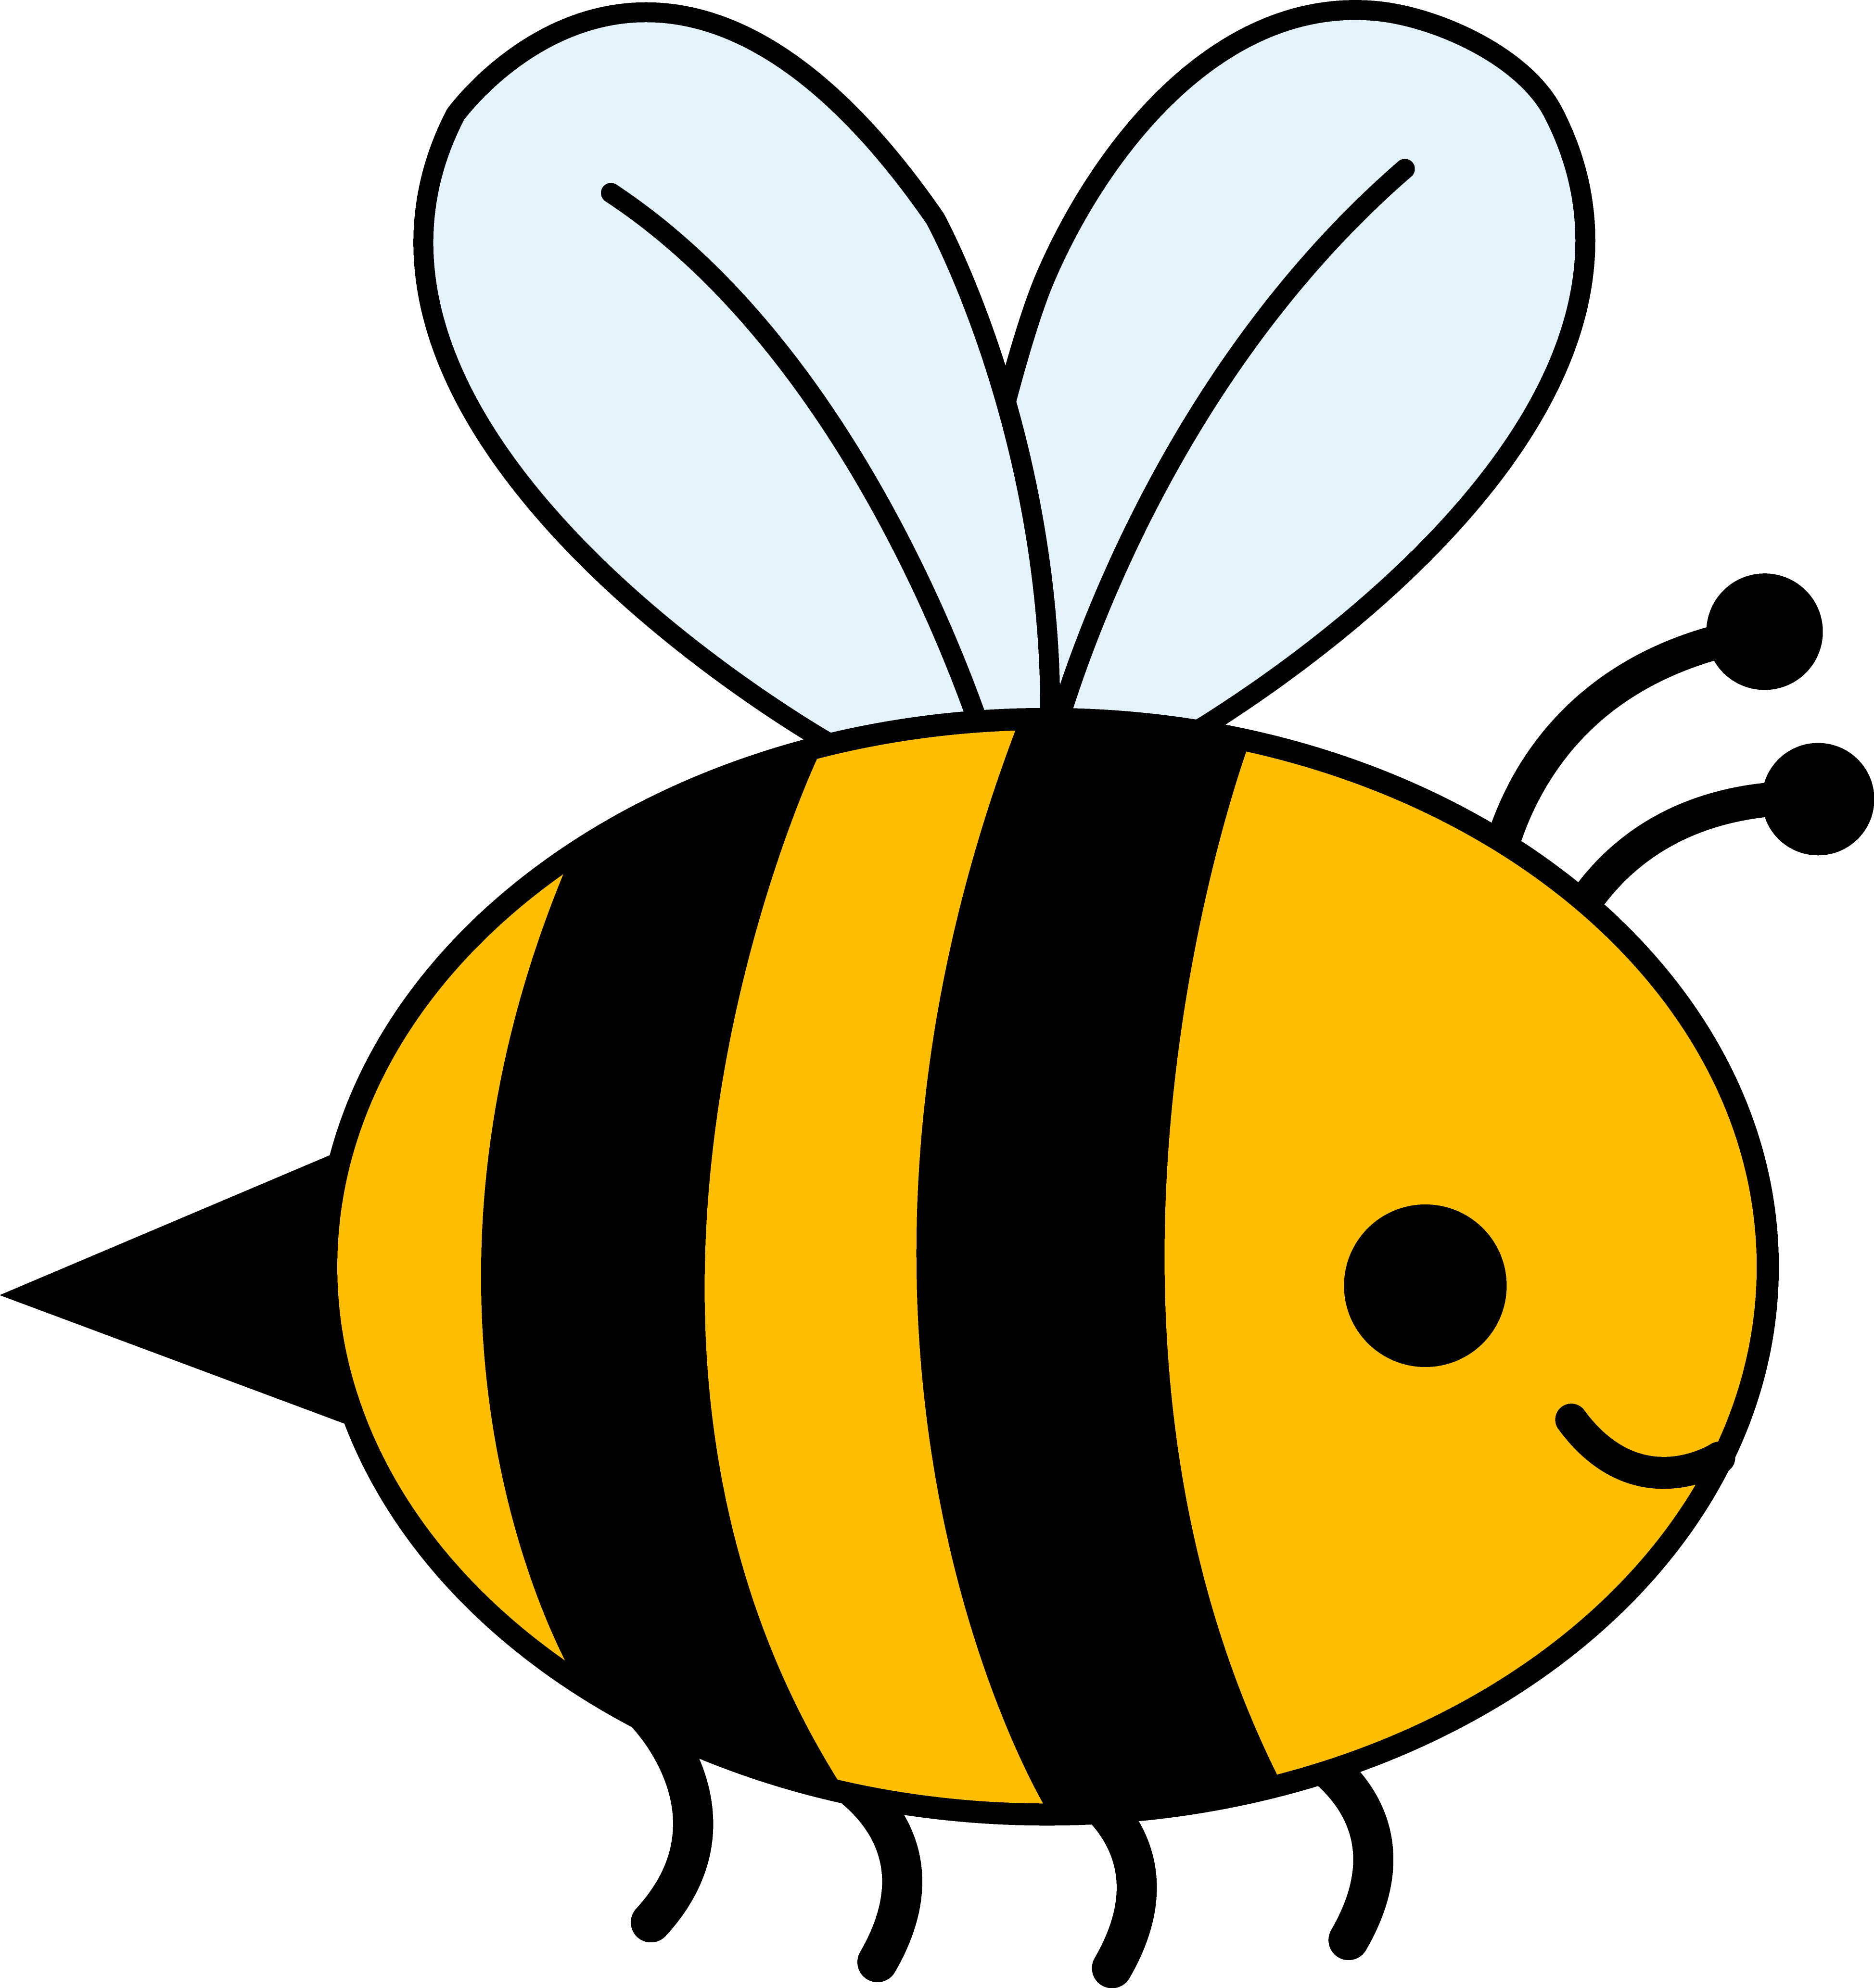 Cute And Funny Fluffy Yellow Bumble Bee Cartoo  Wallpaper